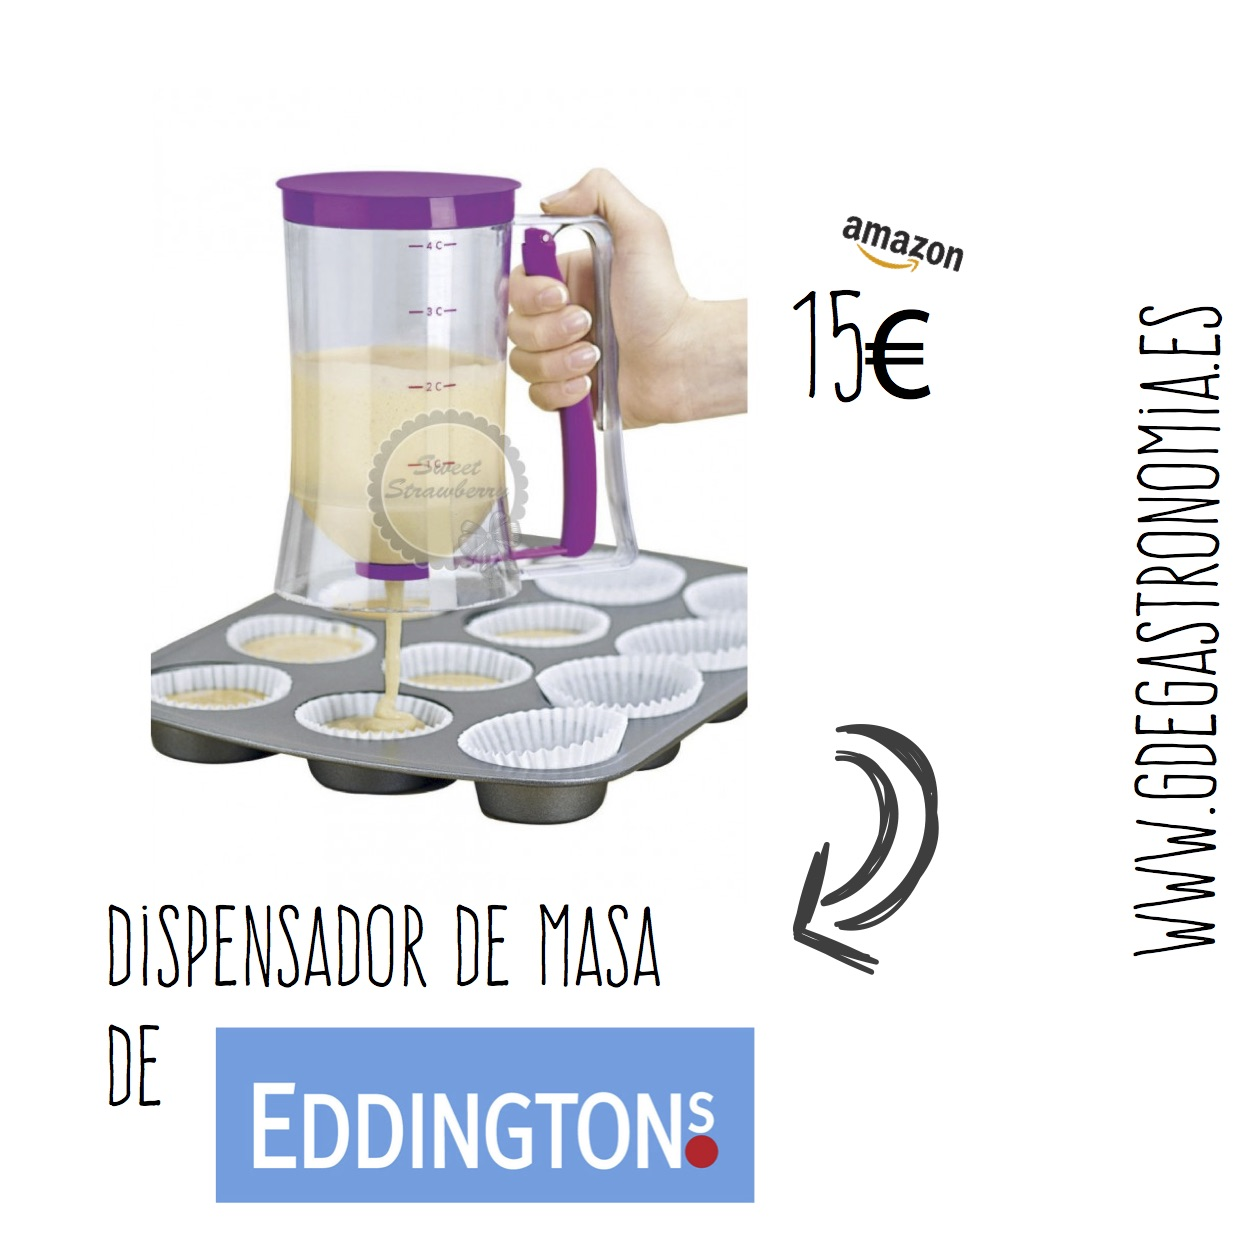 Dispensador de masa de Eddingtons